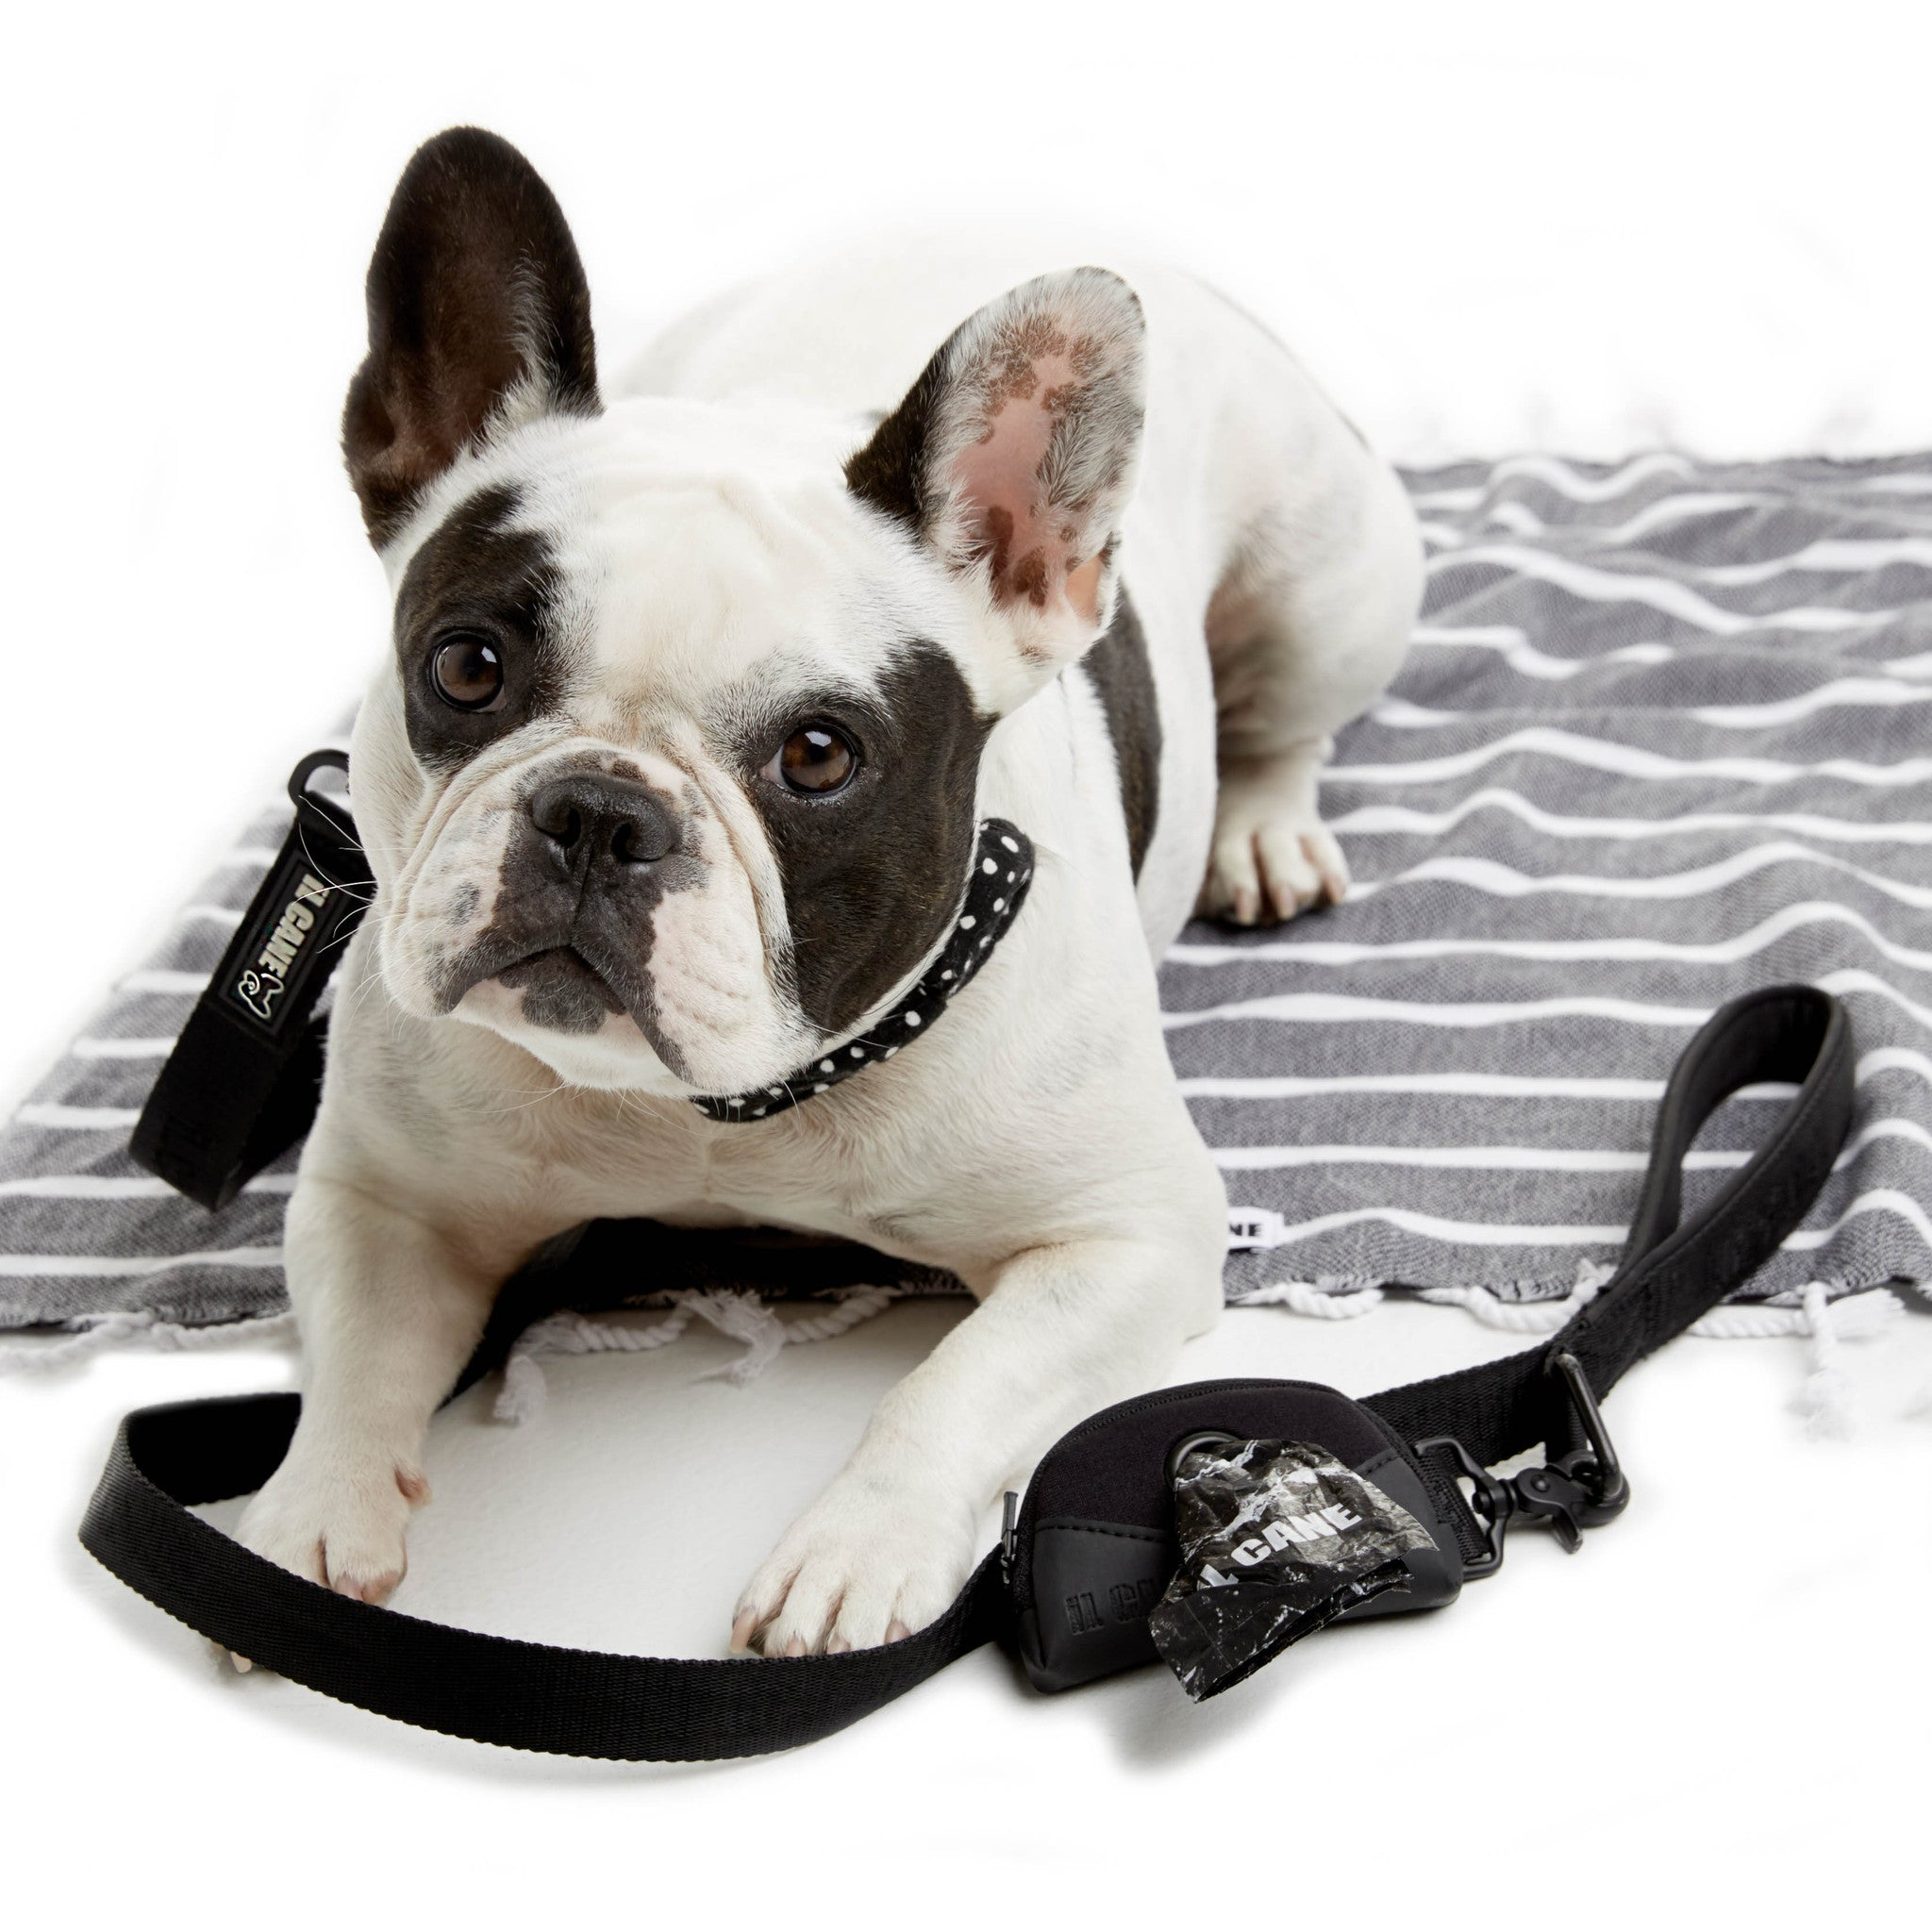 iL CANE - Breezy Pick Up Bag Holder